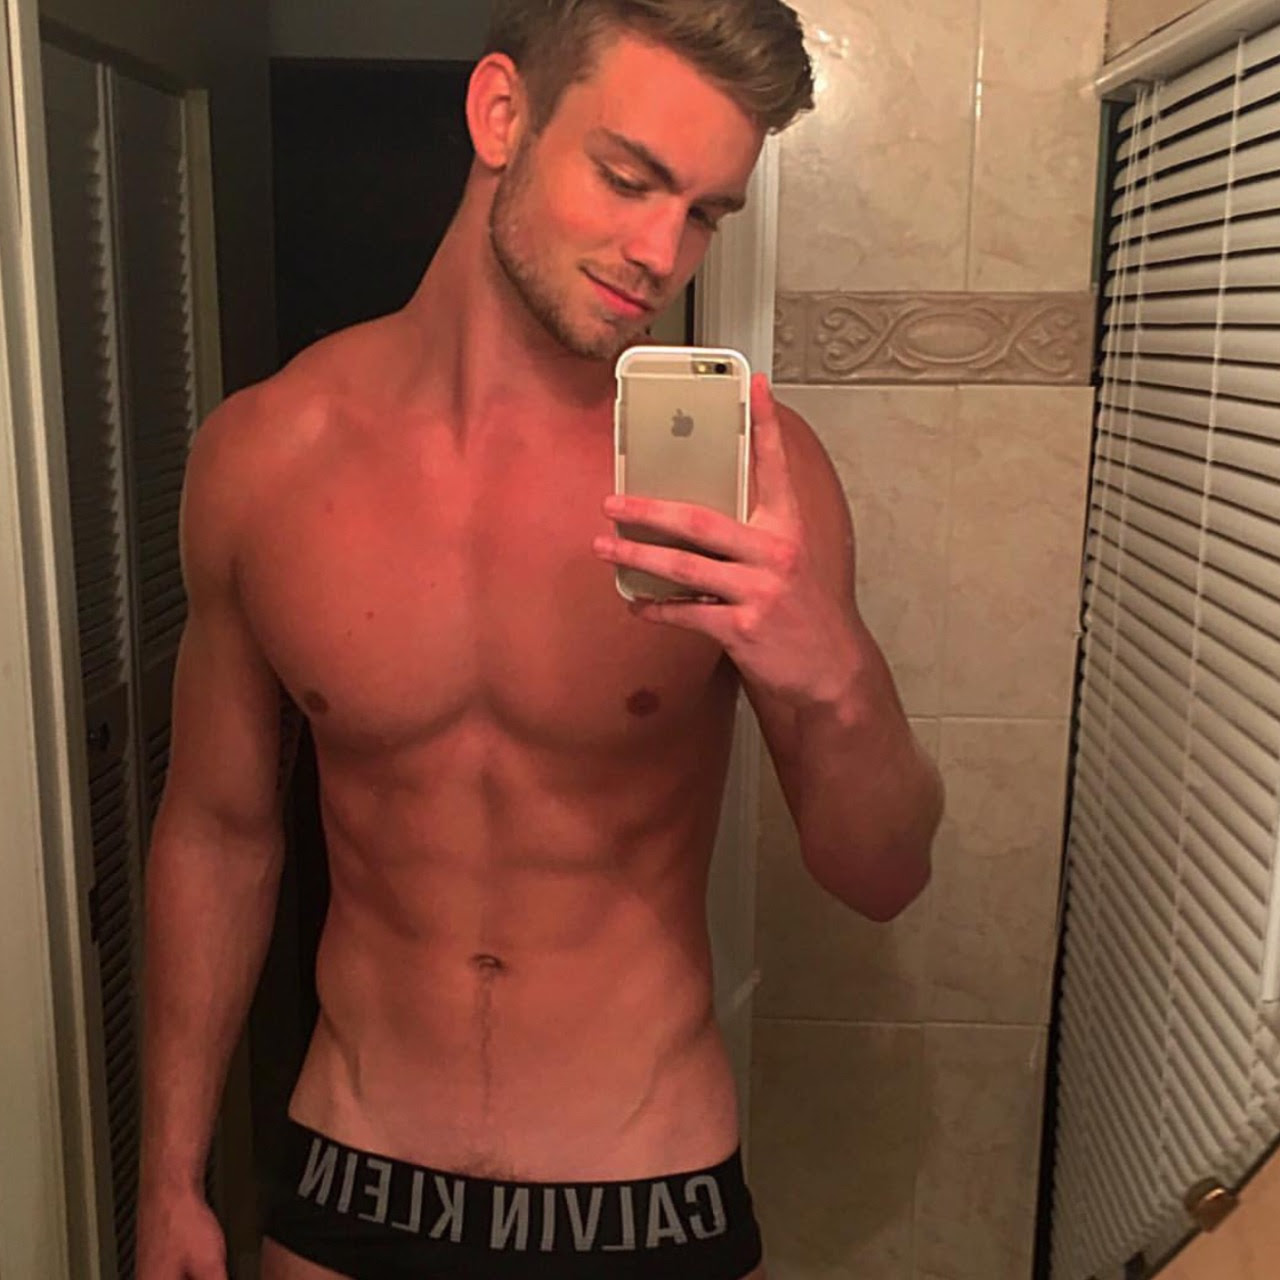 Stop tantalizing me, Dustin McNeer!Click here to see my other posts on Dustin.